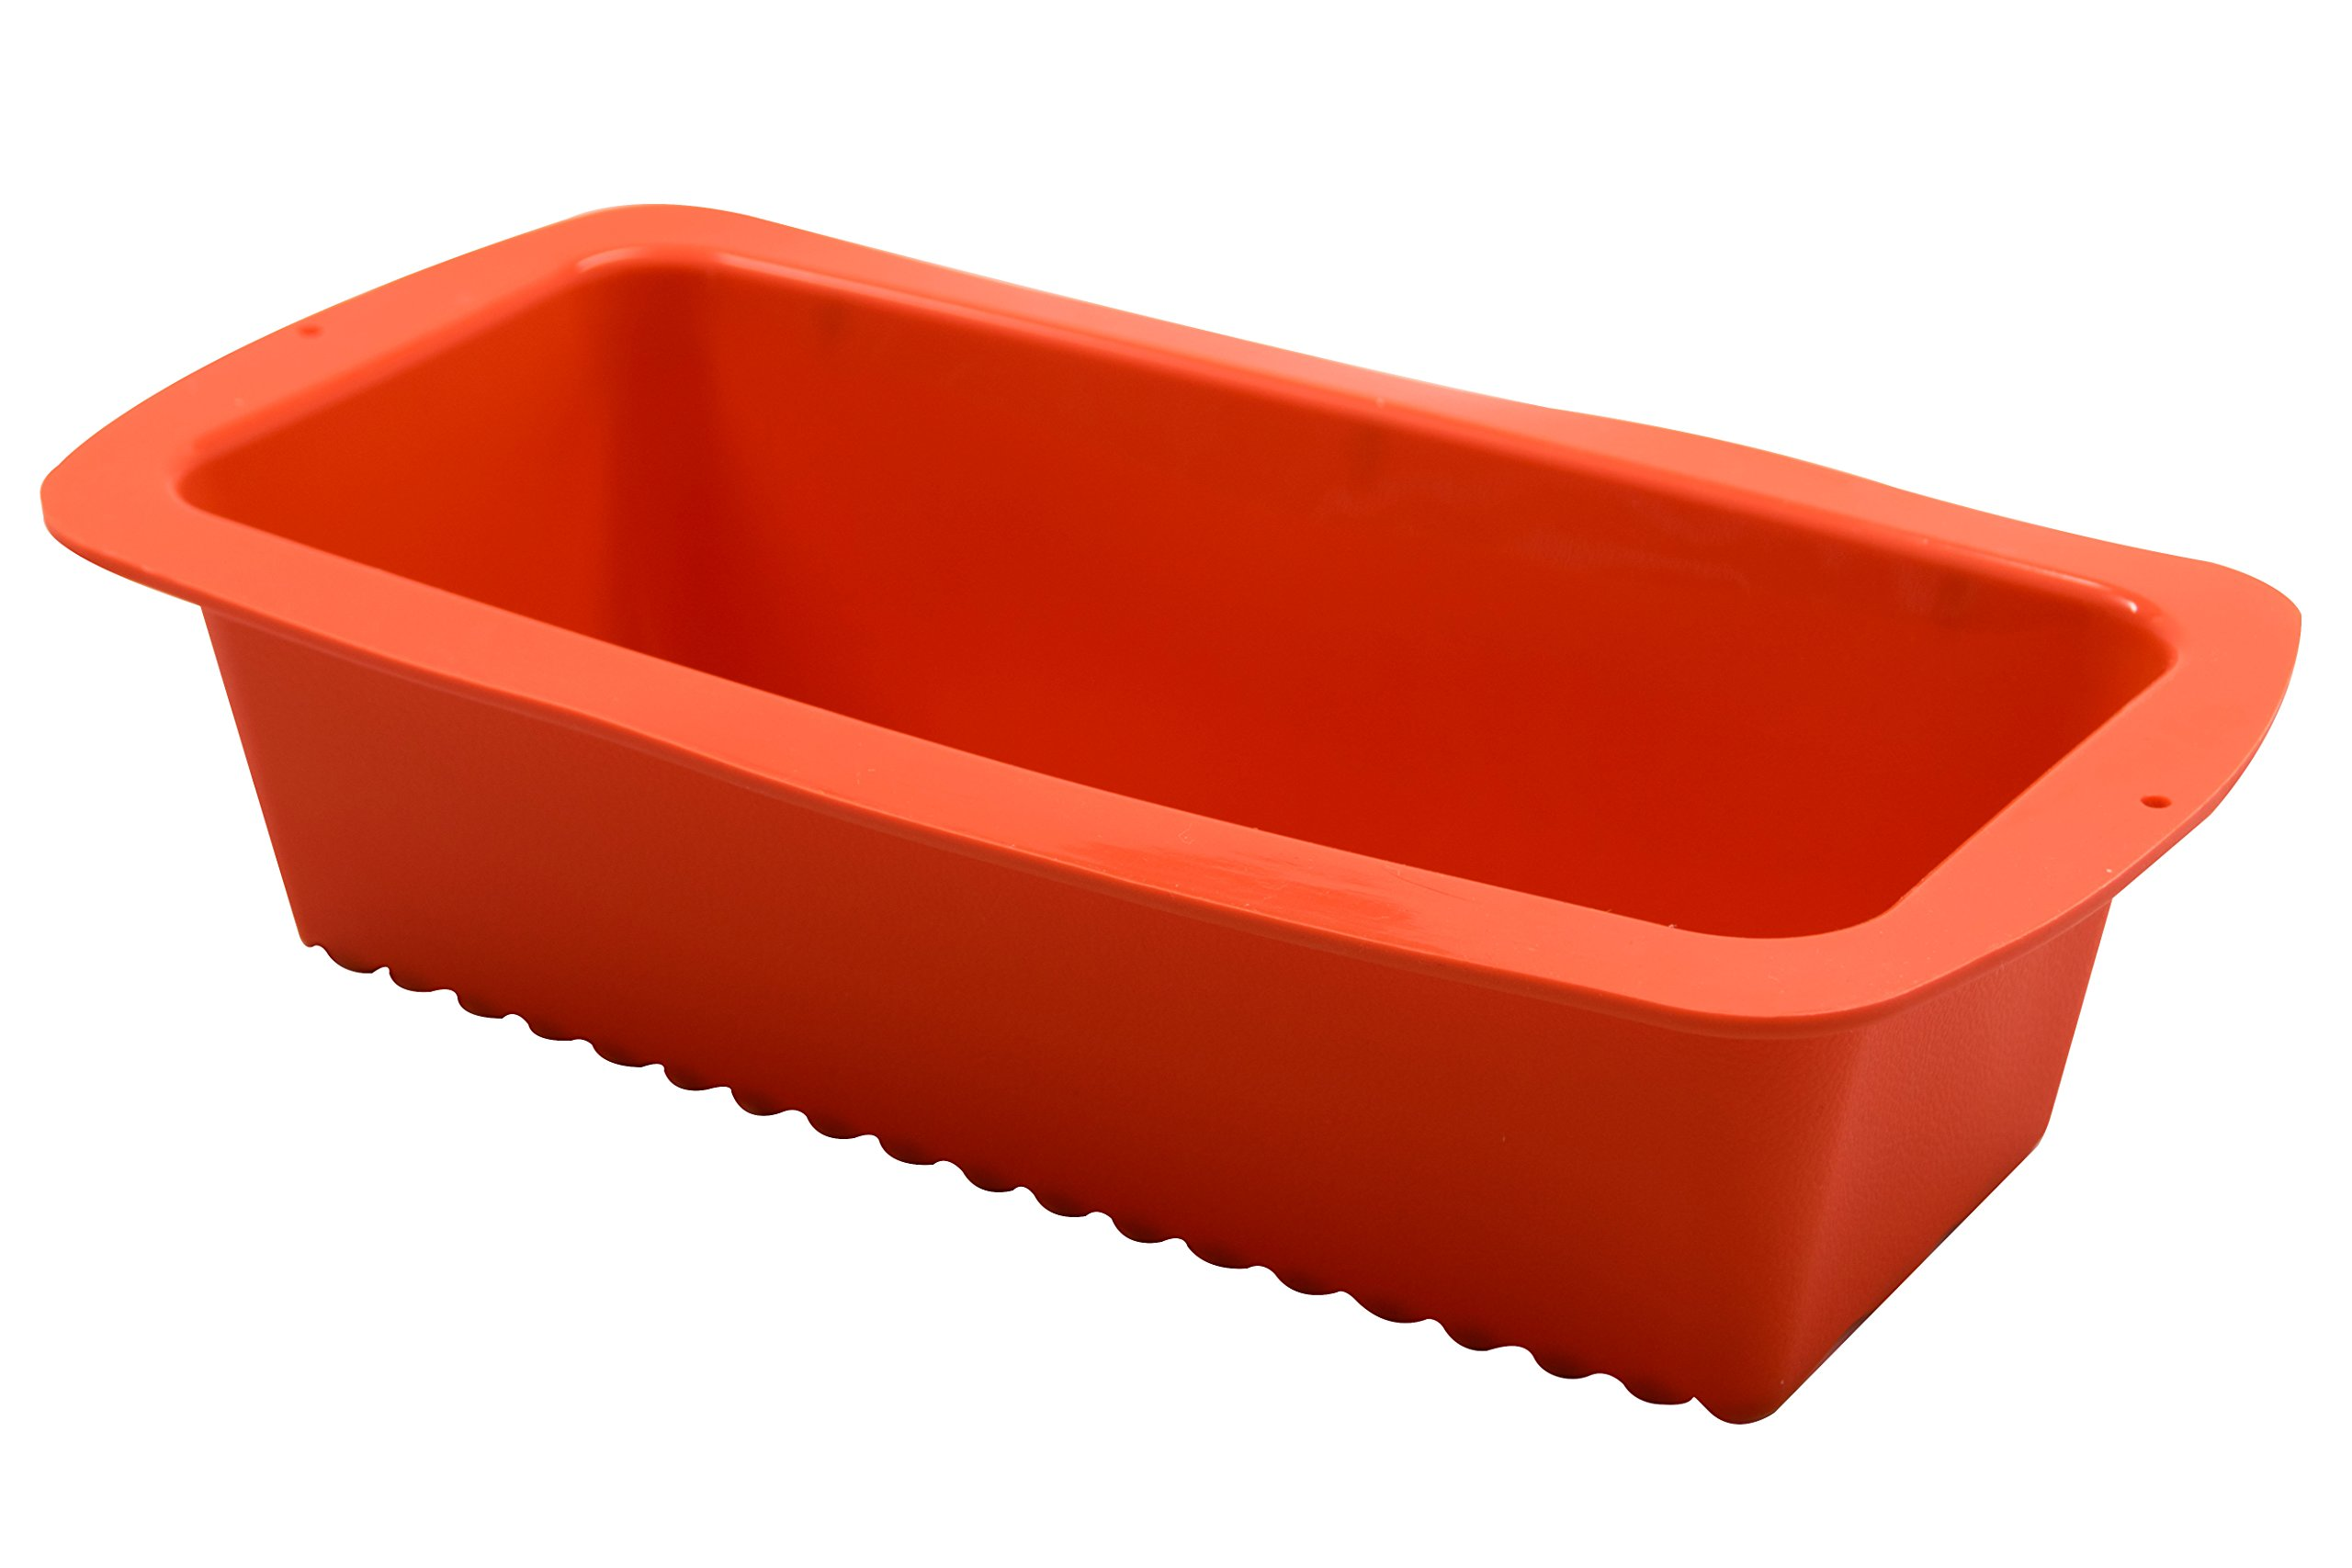 Marathon KW200009OR Premium Silicone Non-Stick Loaf, Bread and Cake Pan. BPA Free, Oven and Dishwasher Safe, Color – Orange.